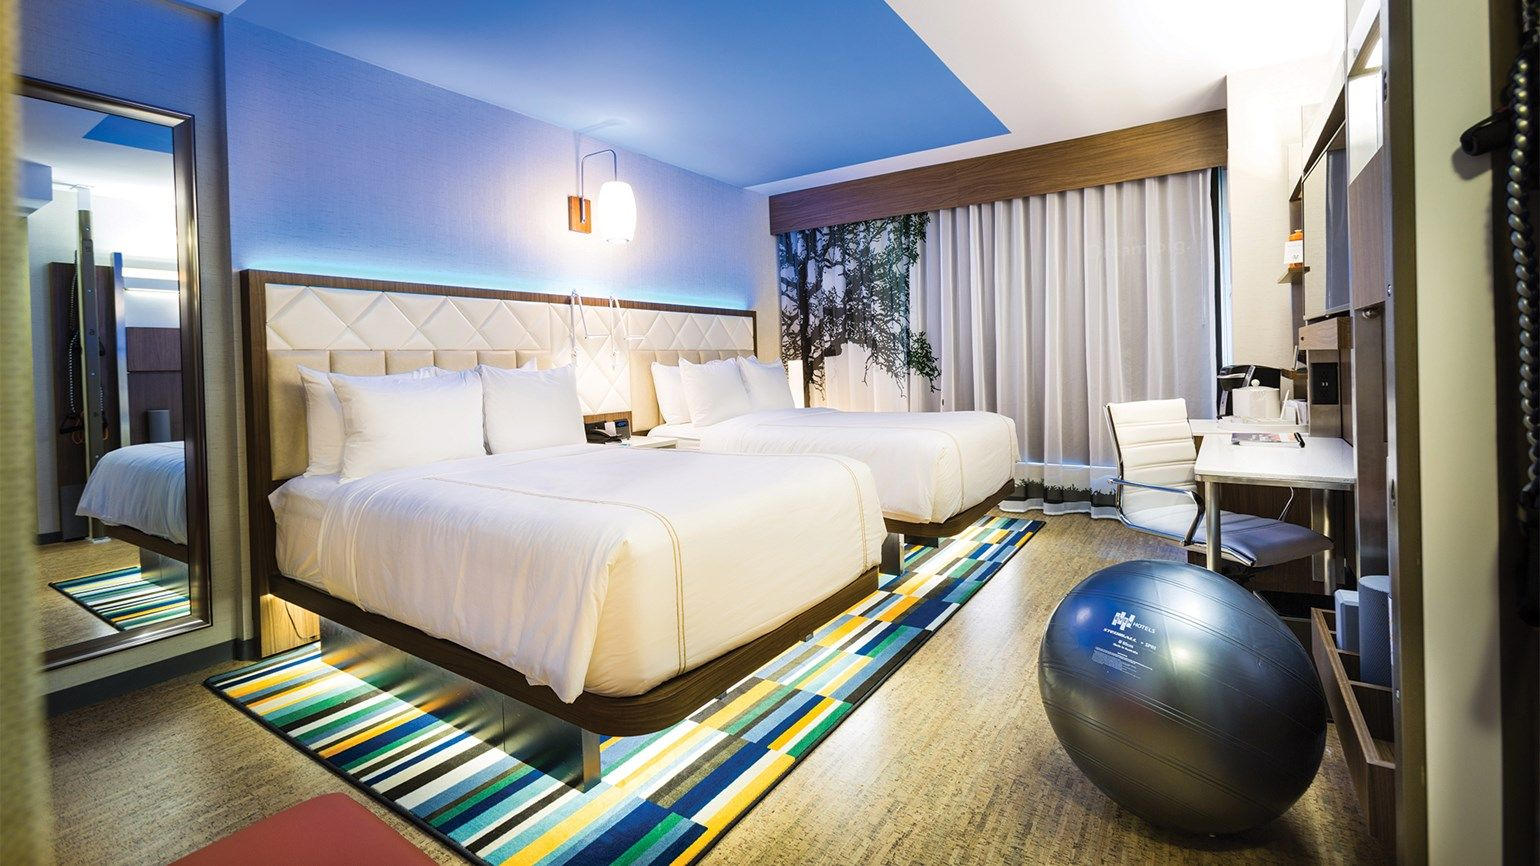 Hotels finding fitness areas get scant use: Travel Weekly